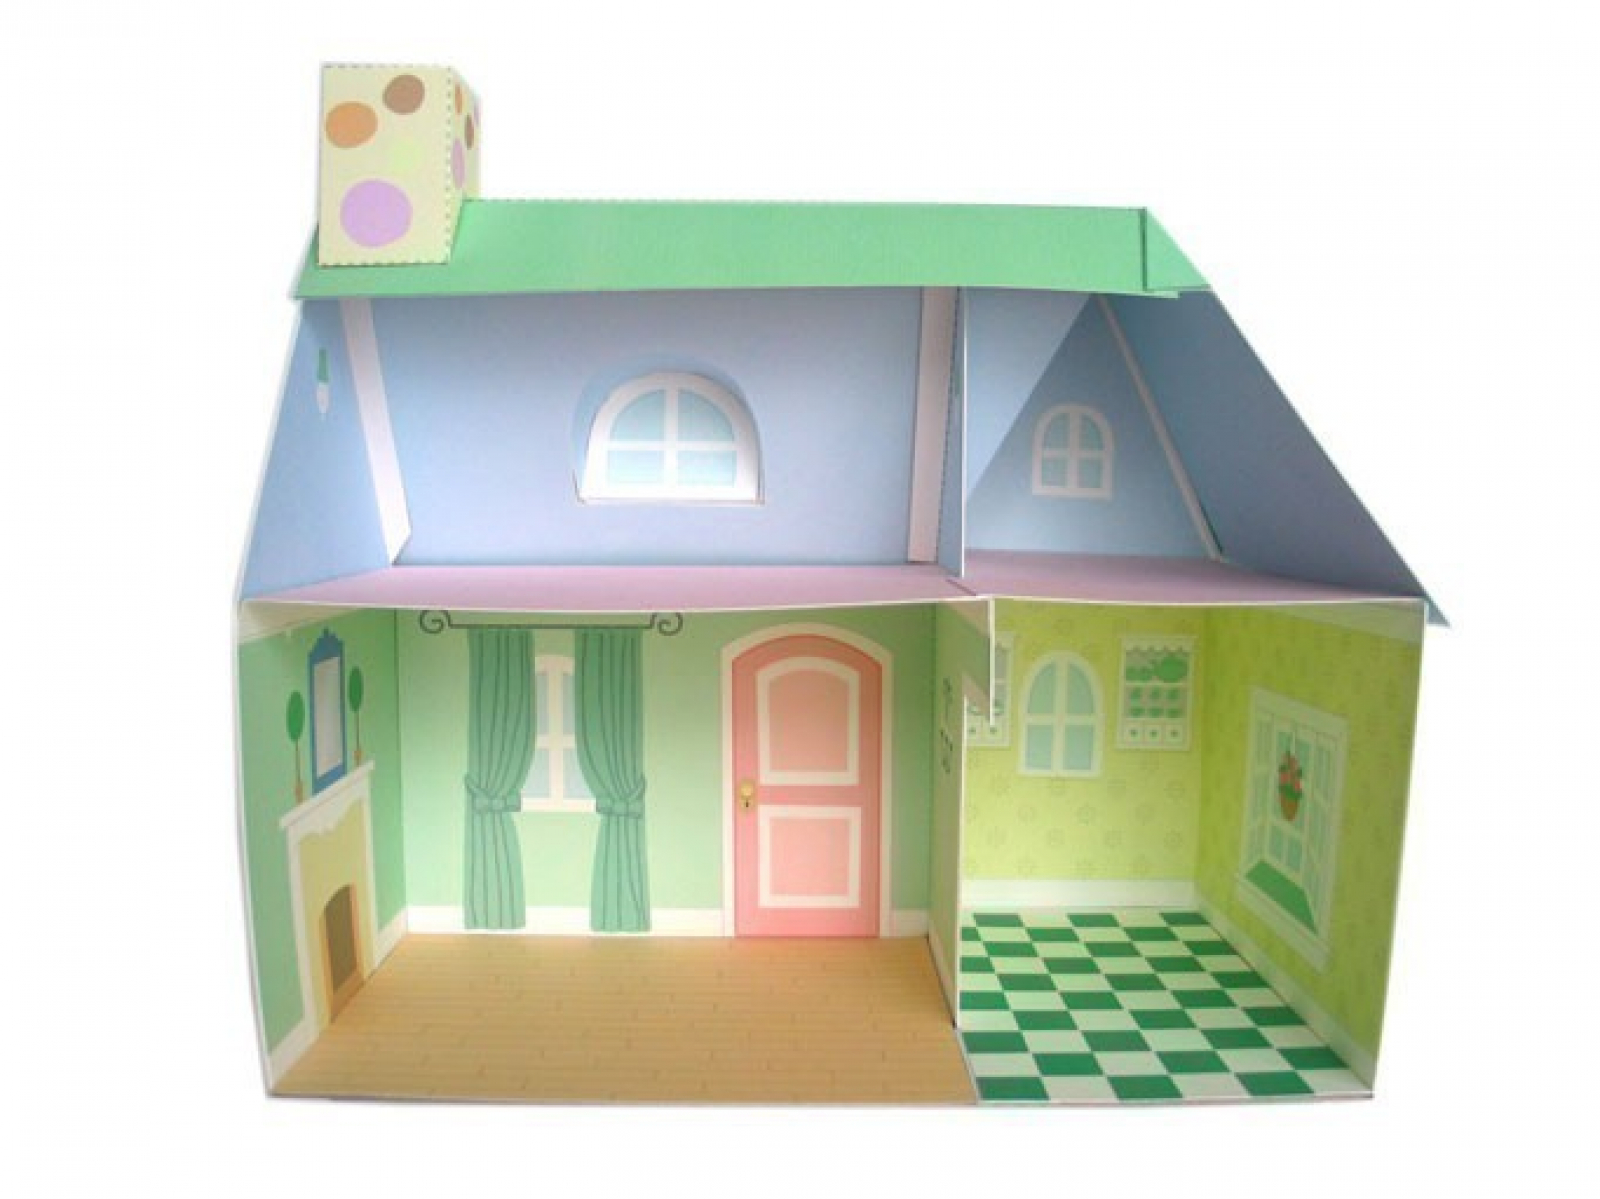 reaction paper a doll house Free term papers on a doll's house available at planetpaperscom, the largest free term paper community.